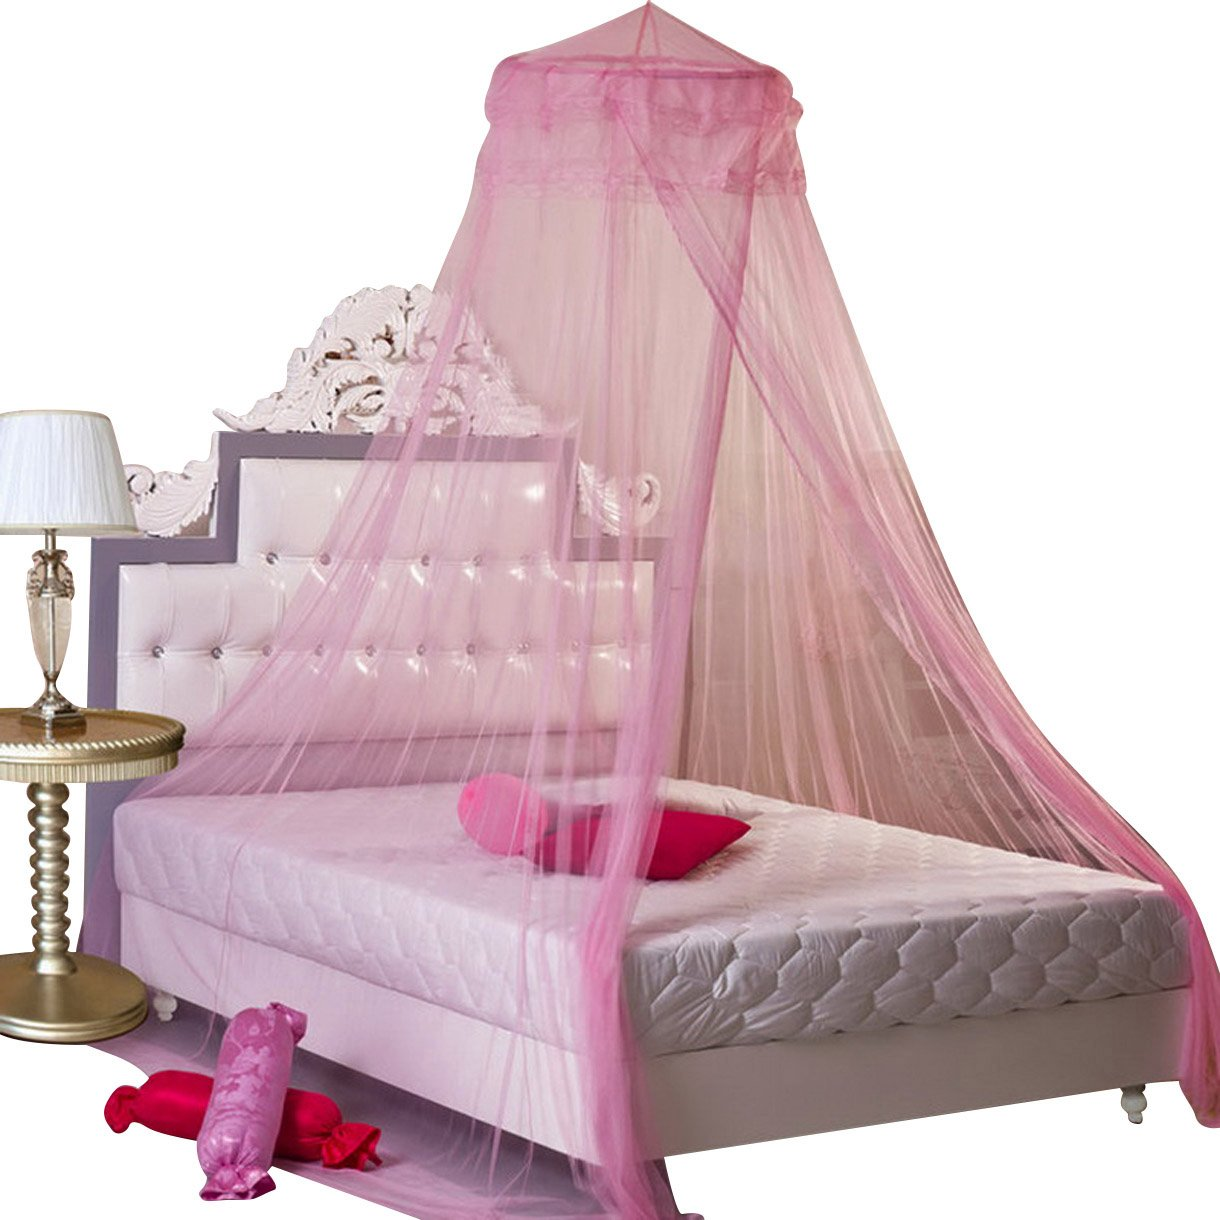 Housweety G00616 Dome Bed Canopy Netting Princess Mosquito Net, White HOUSWEETYG00616-S